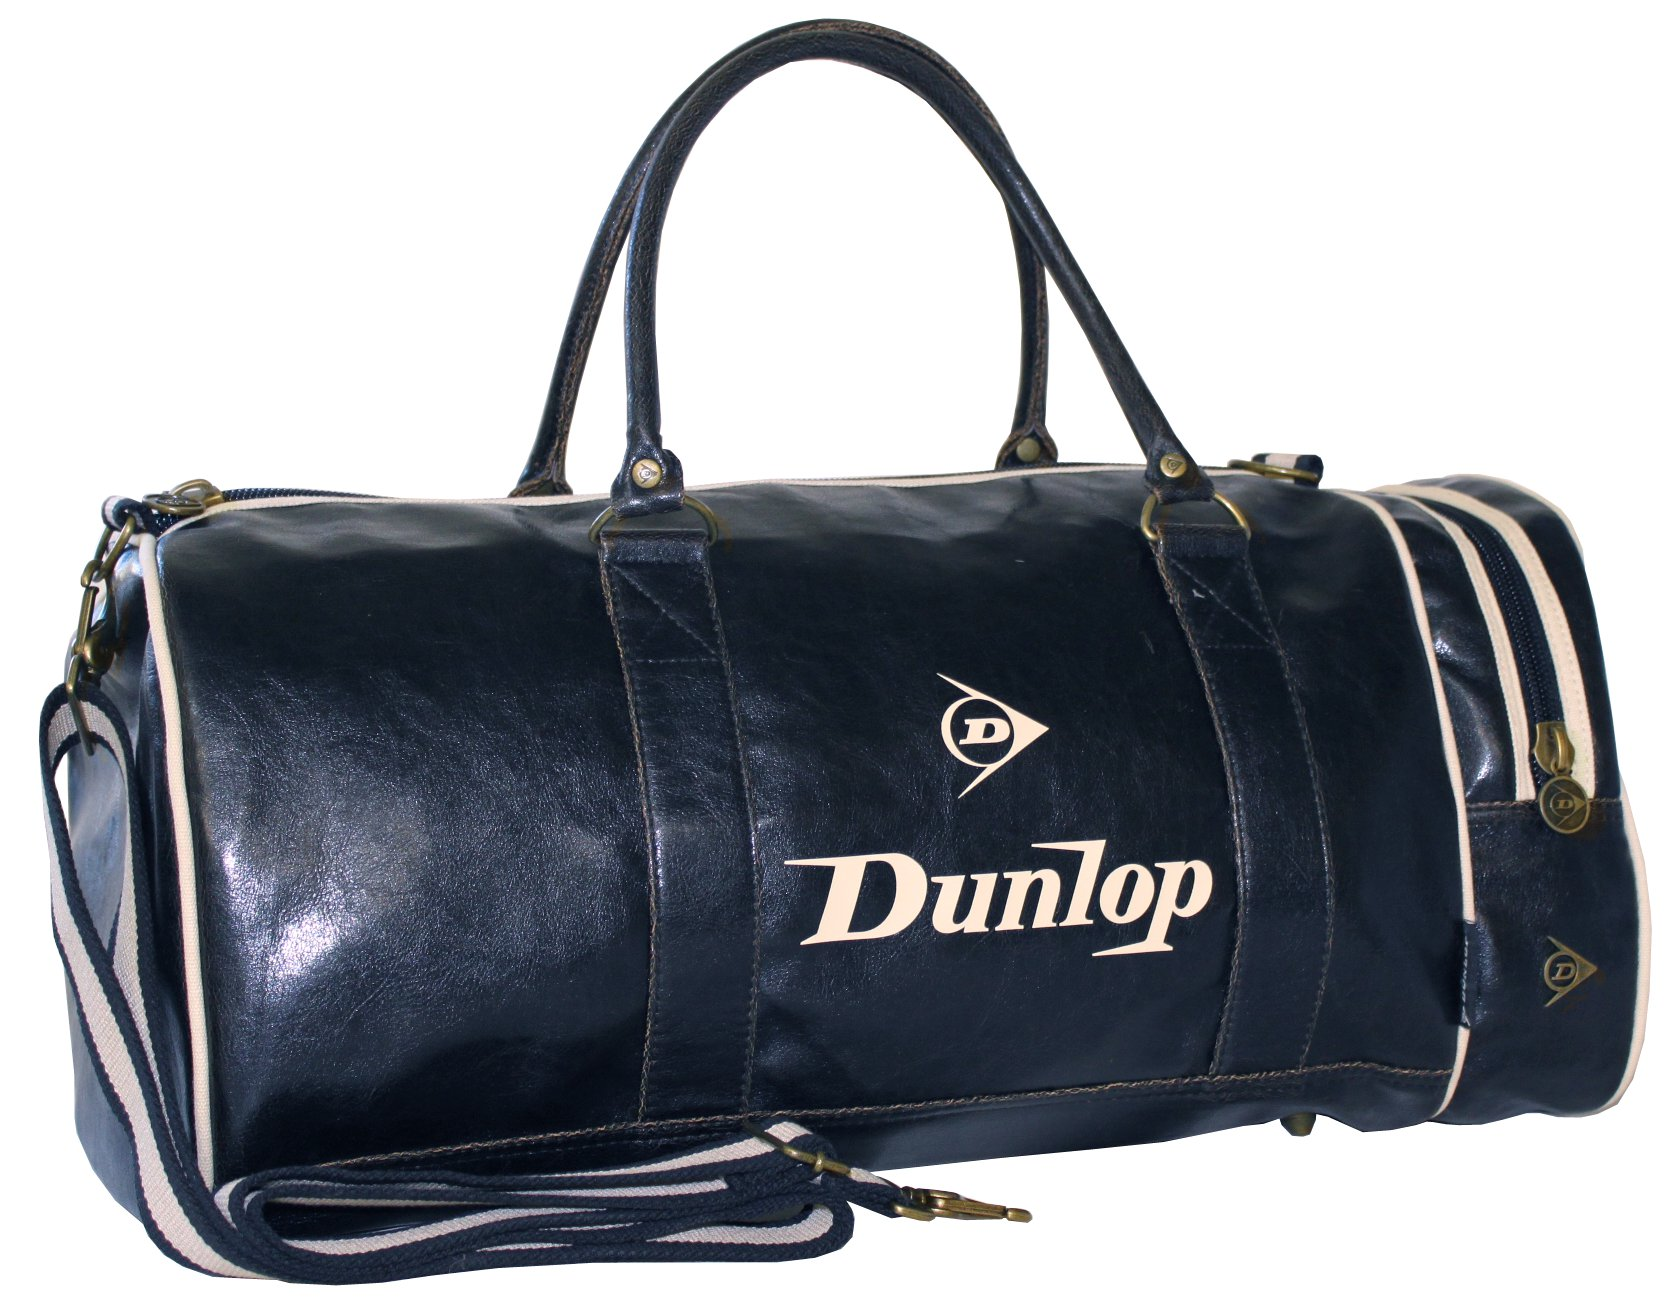 dunlop retro gym holdall sports weekend barrel shoulder bag navy blue cream ebay. Black Bedroom Furniture Sets. Home Design Ideas